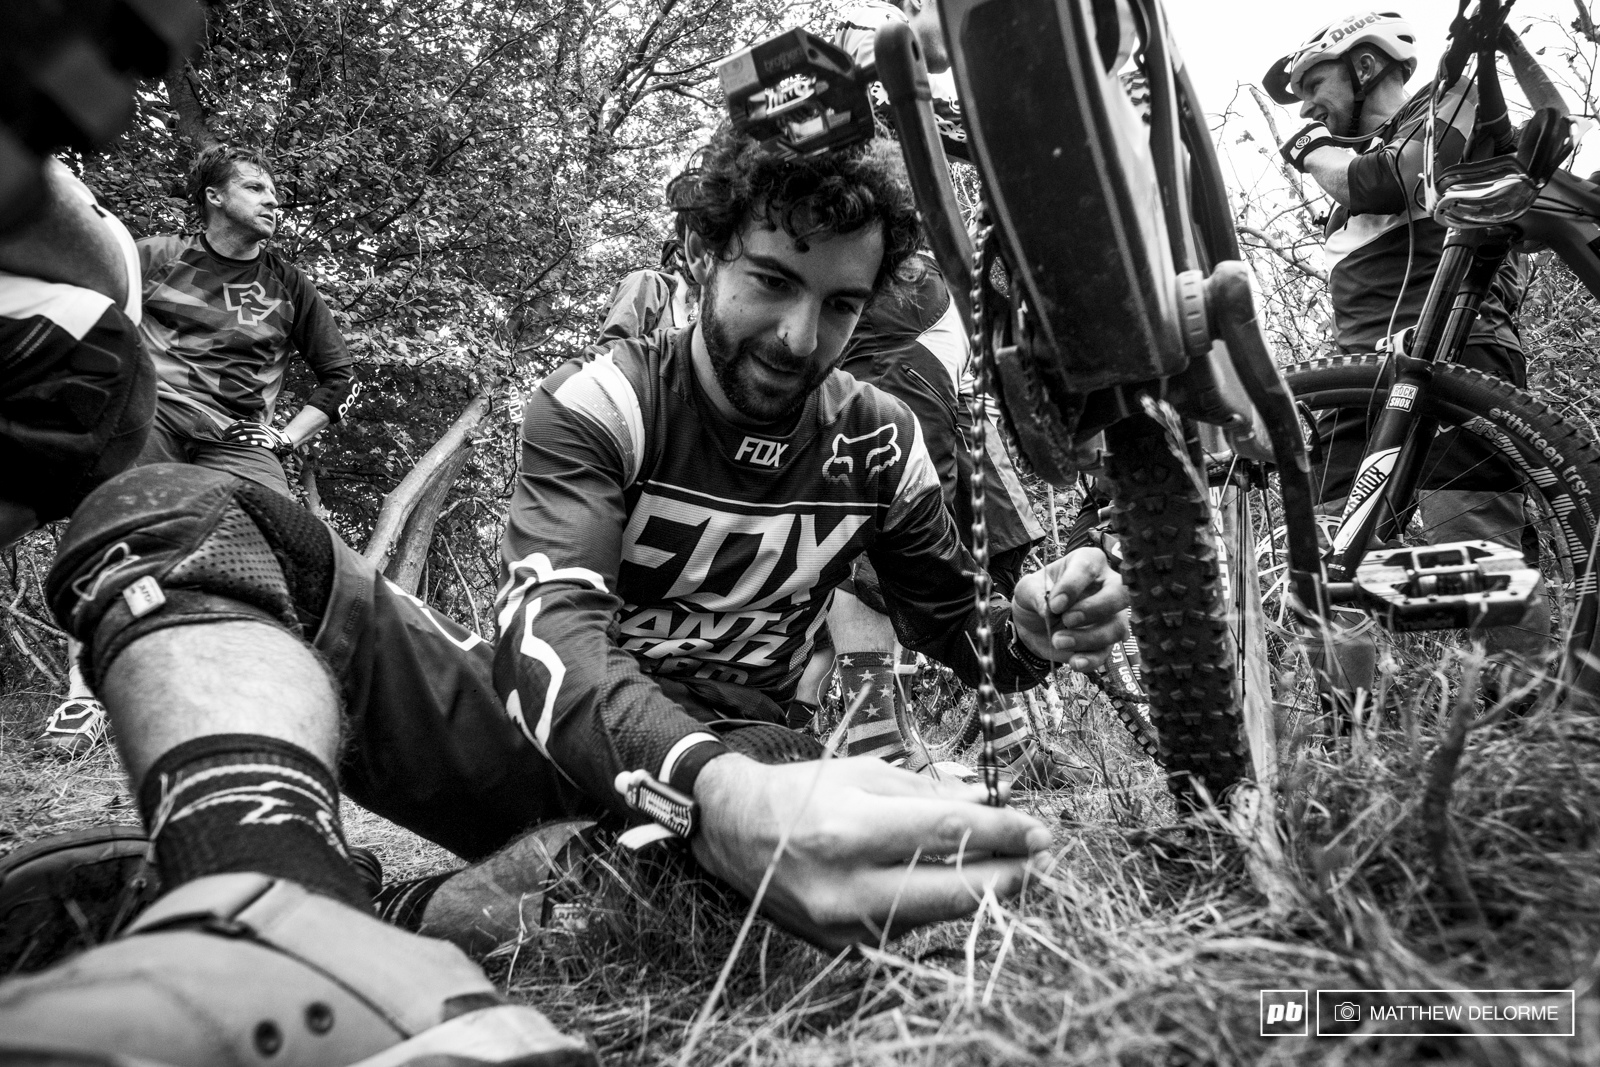 Iago deals with a broken chain before heading out to stage five.